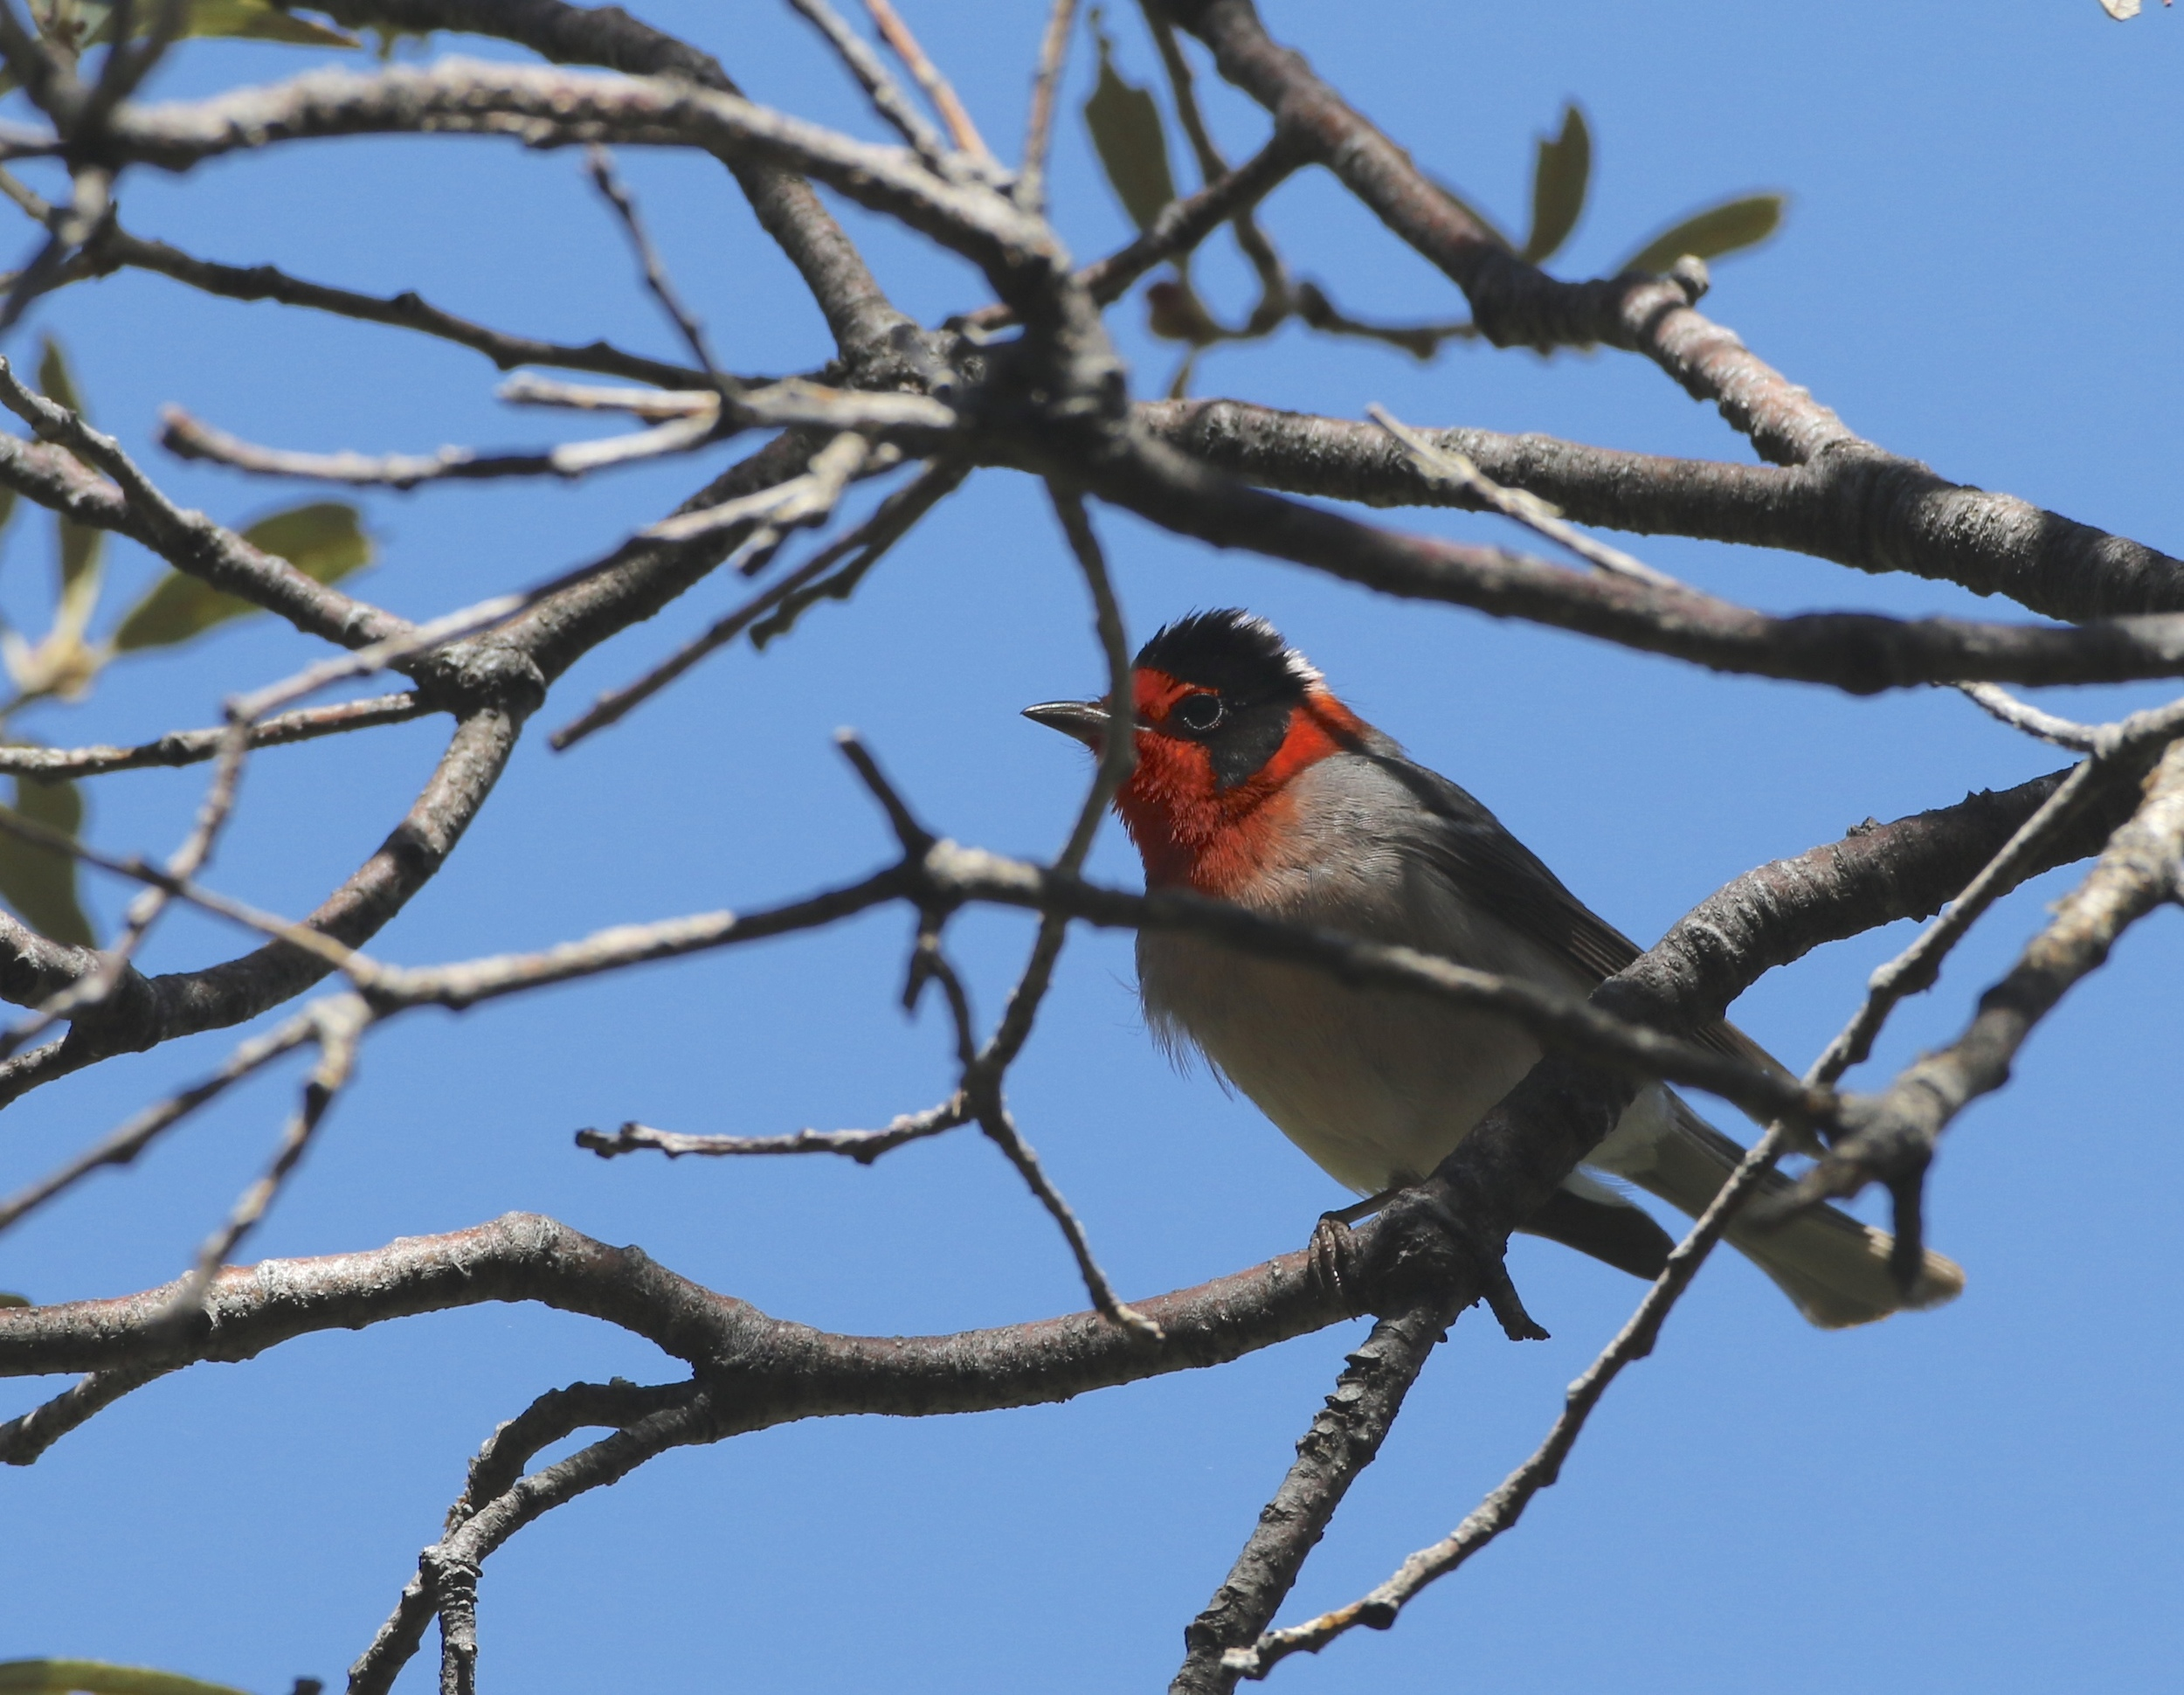 Red-faced Warblers were numerous in the montane forests around Carr and Ramsey Canyons